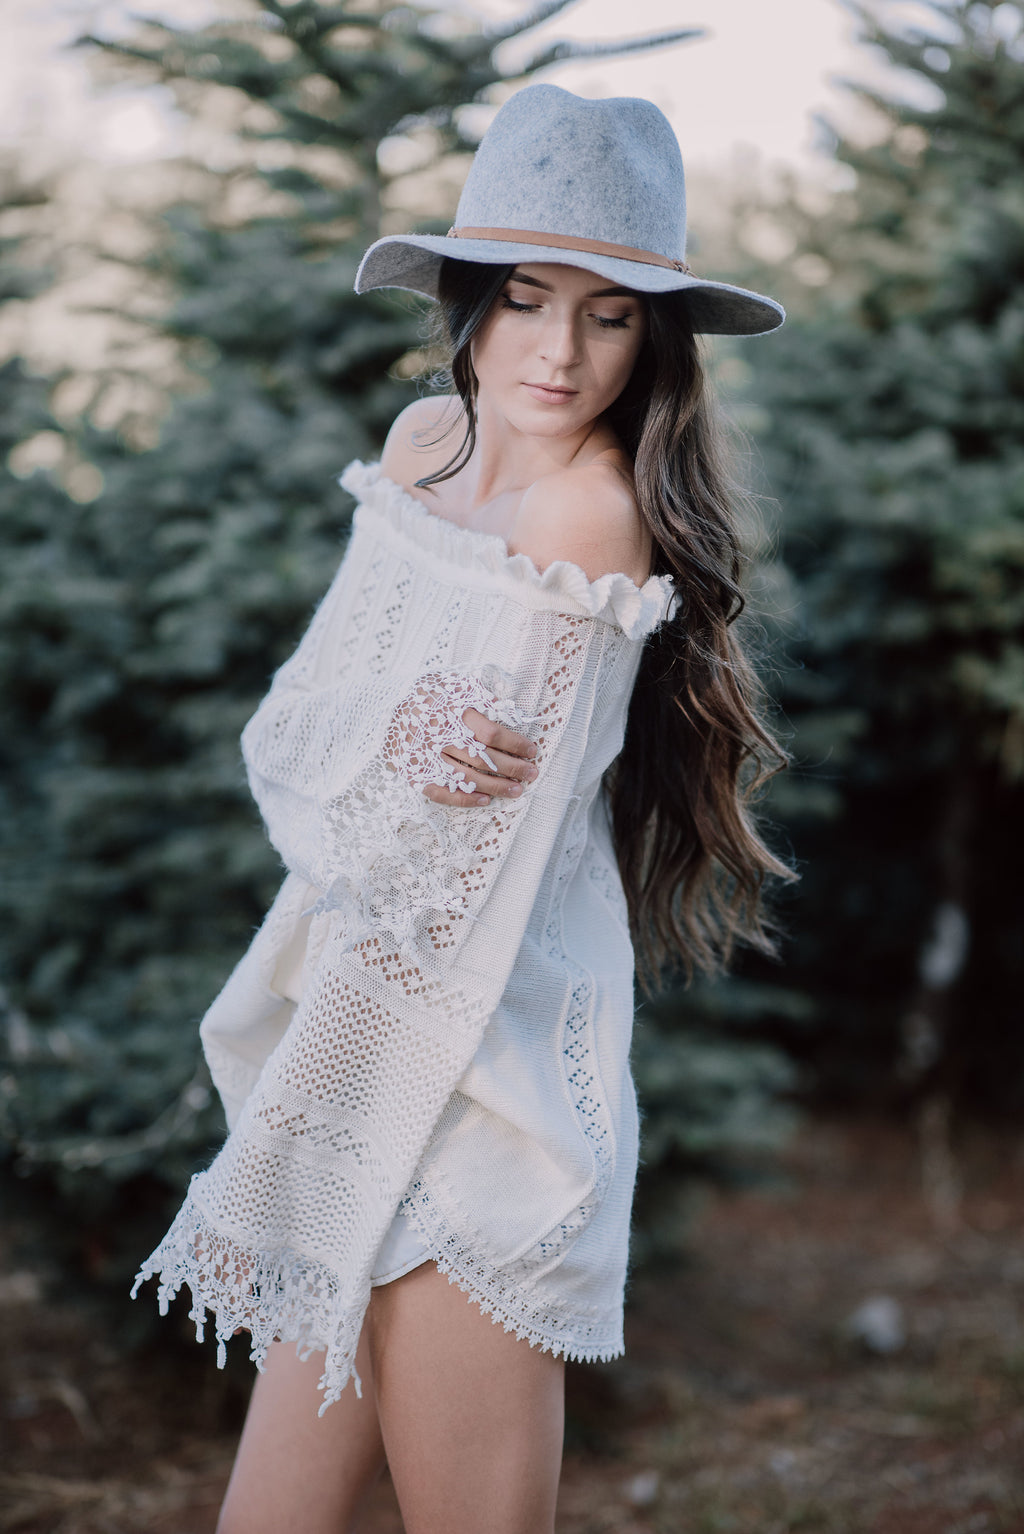 CREAM KNIT OFF SHOULDER SWEATER - llacie